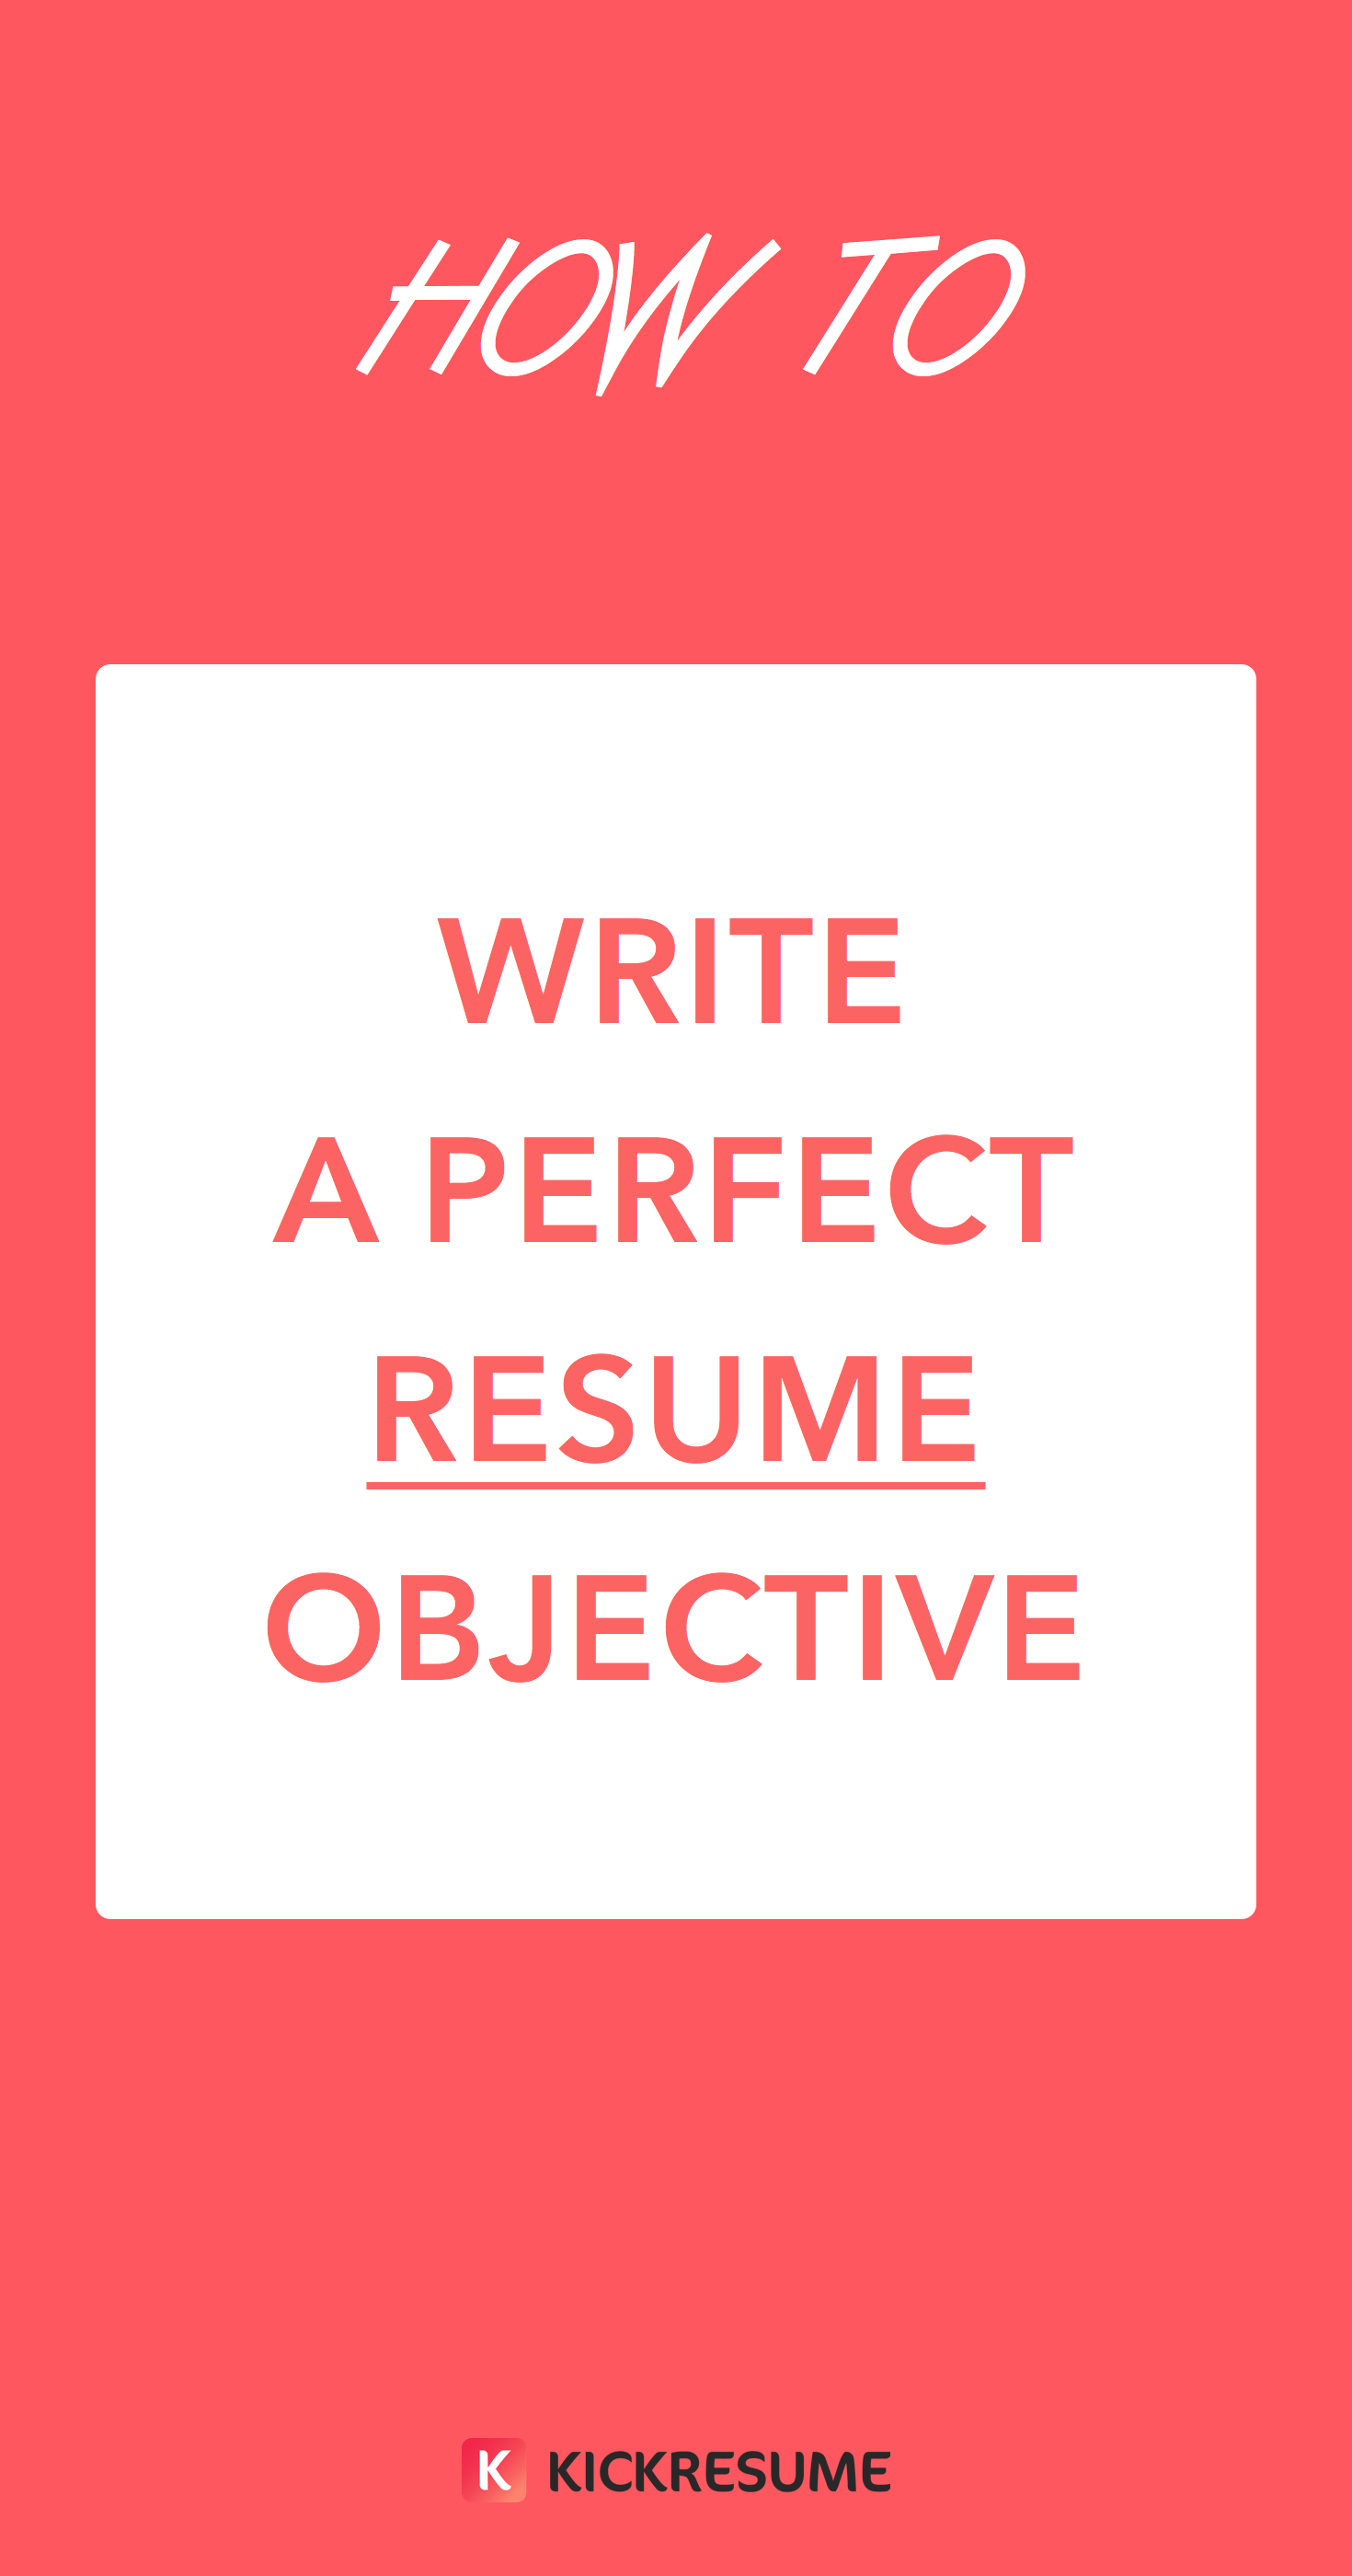 How To Write A Resume Objective For A Teaching Position How To Write A Perfect Resume Objective Examples Included